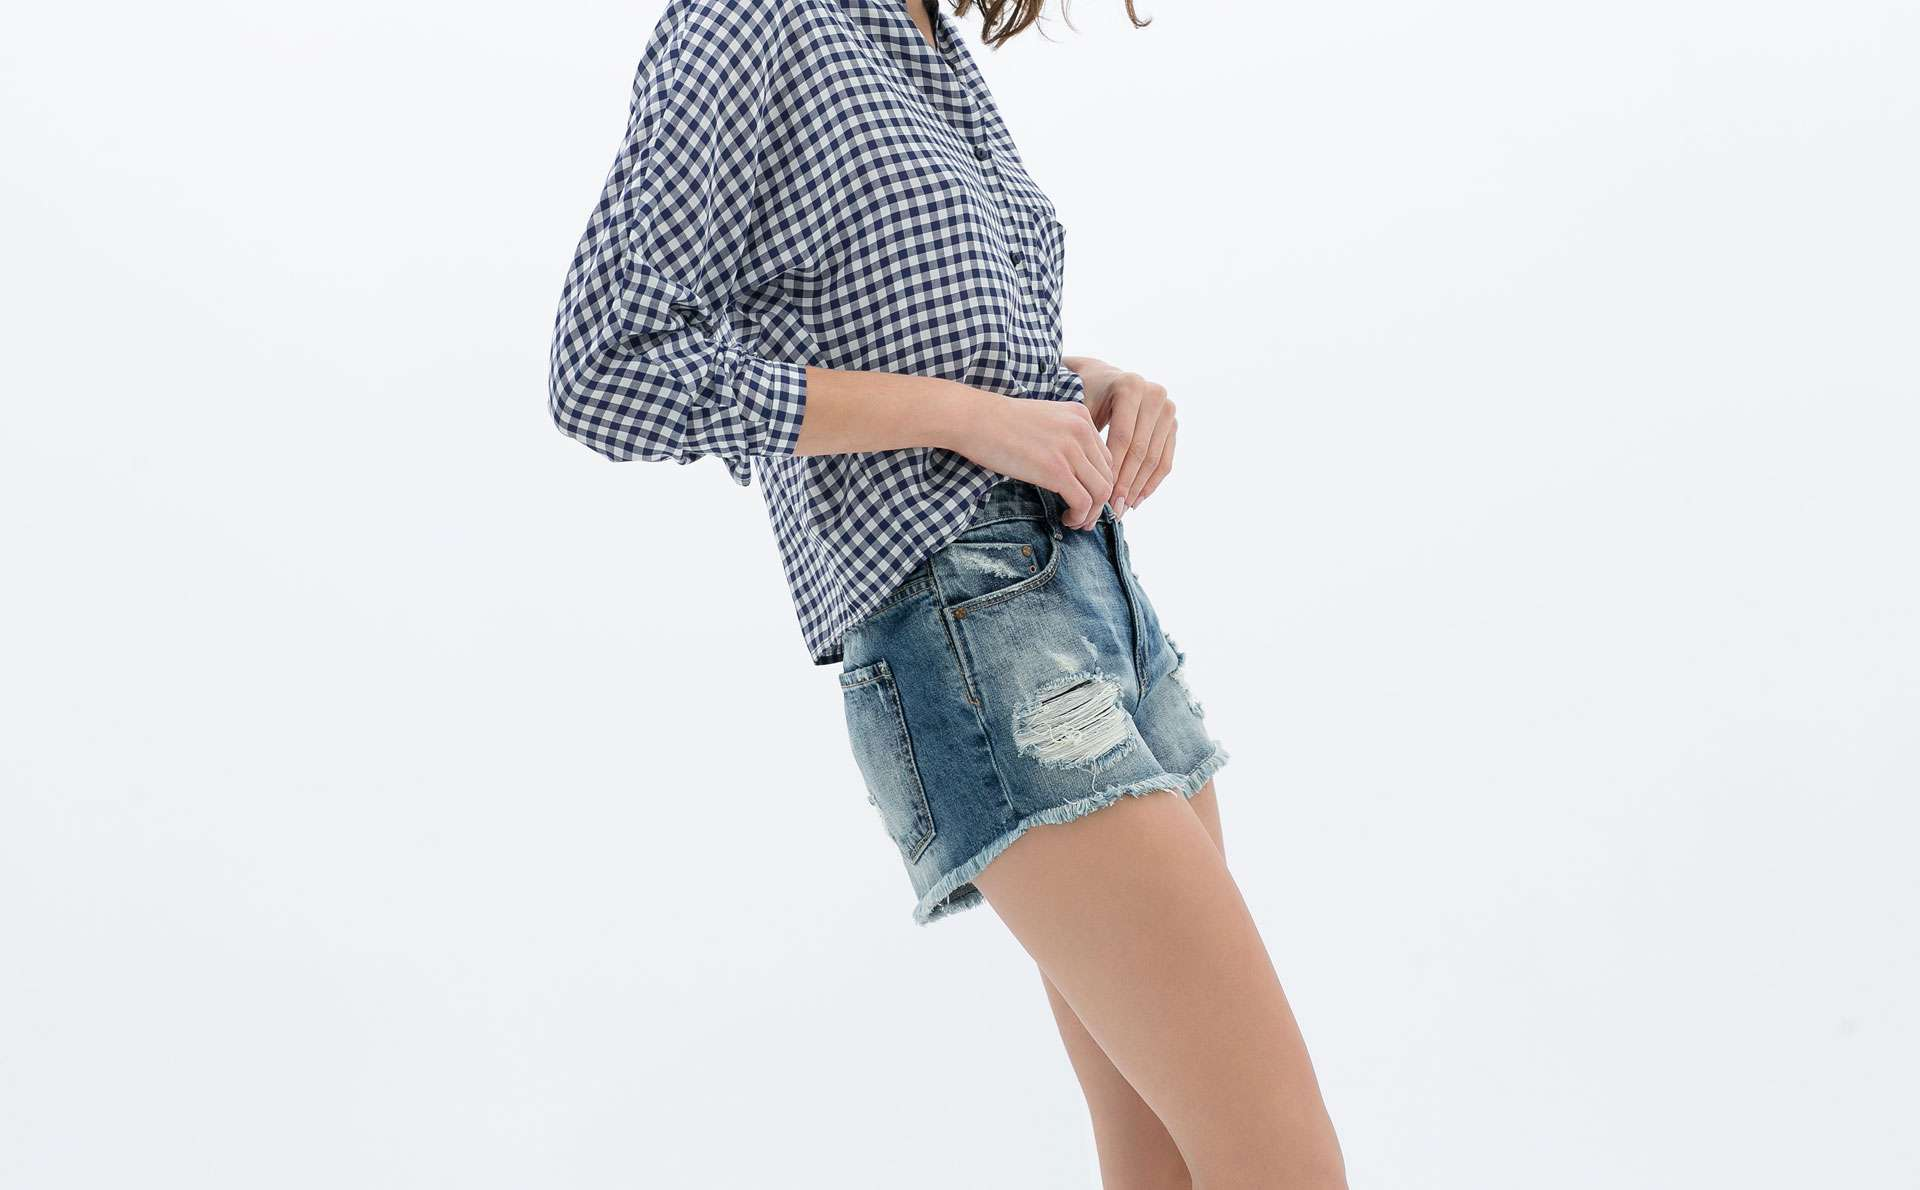 Primavera Estate moda trends - Miley Cyrus shorts Zara